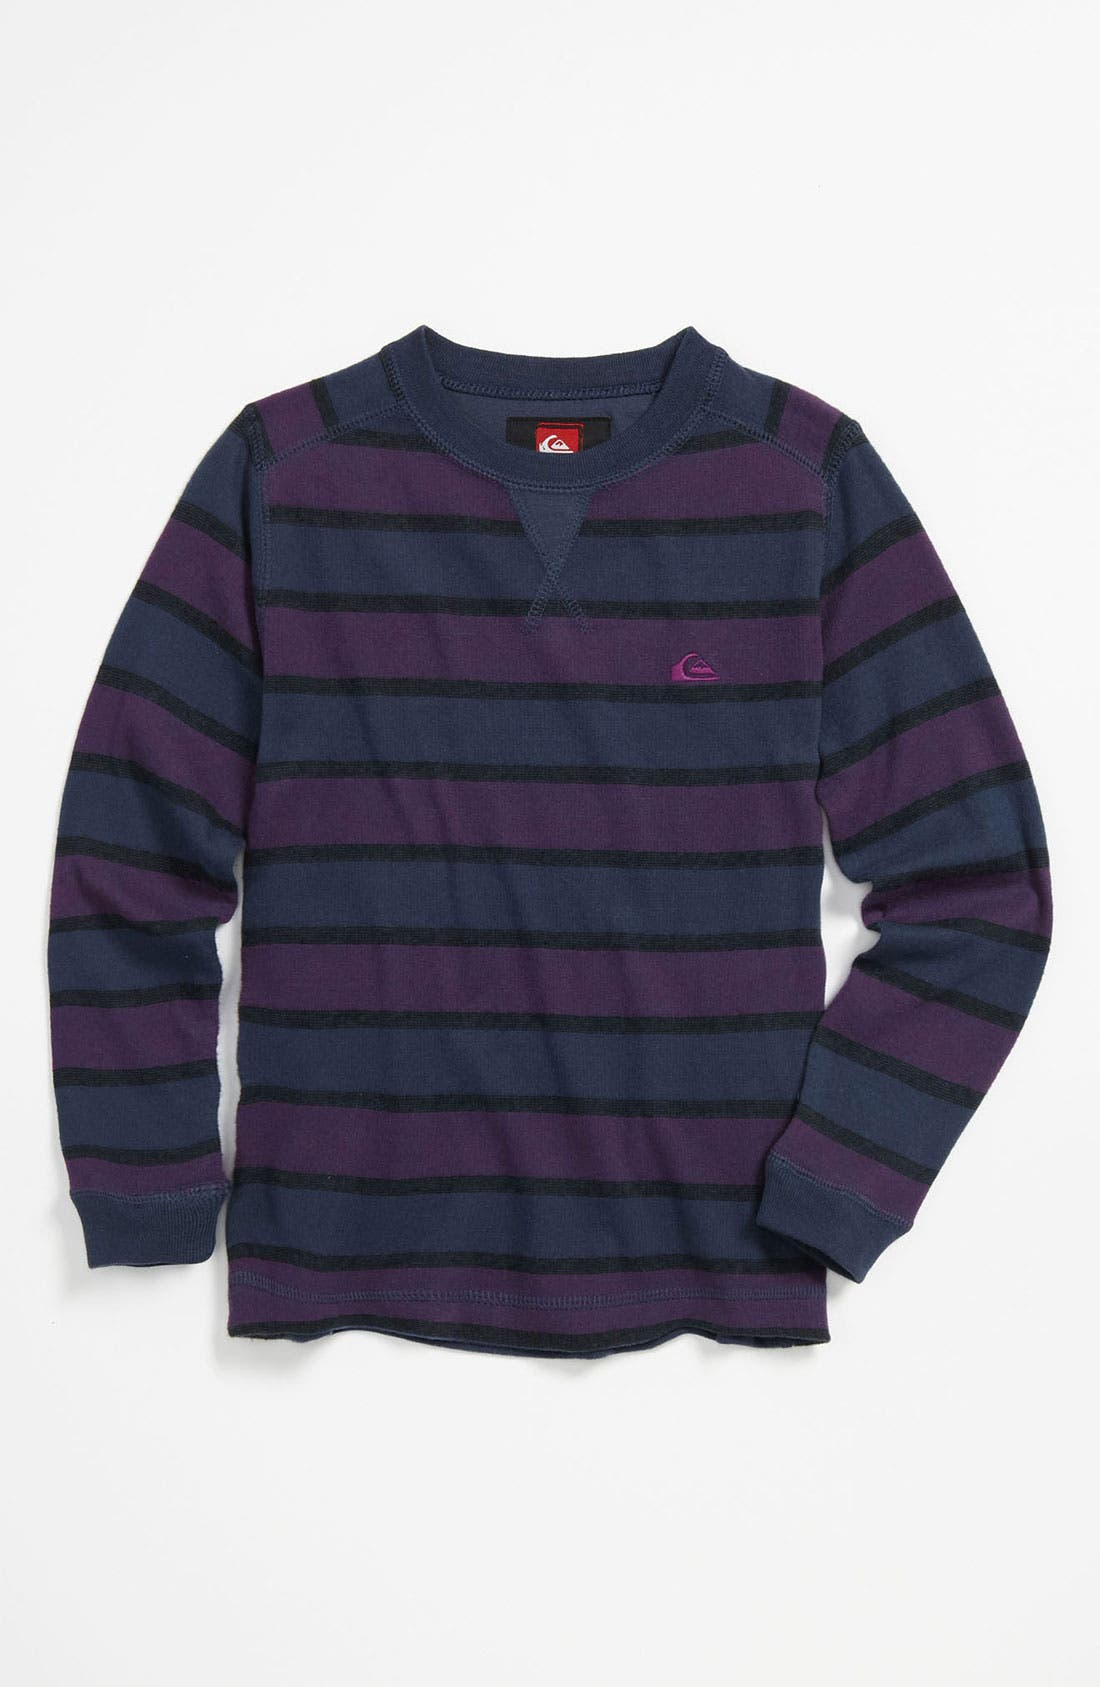 Alternate Image 1 Selected - Quiksilver 'Snitty' Shirt (Little Boys)